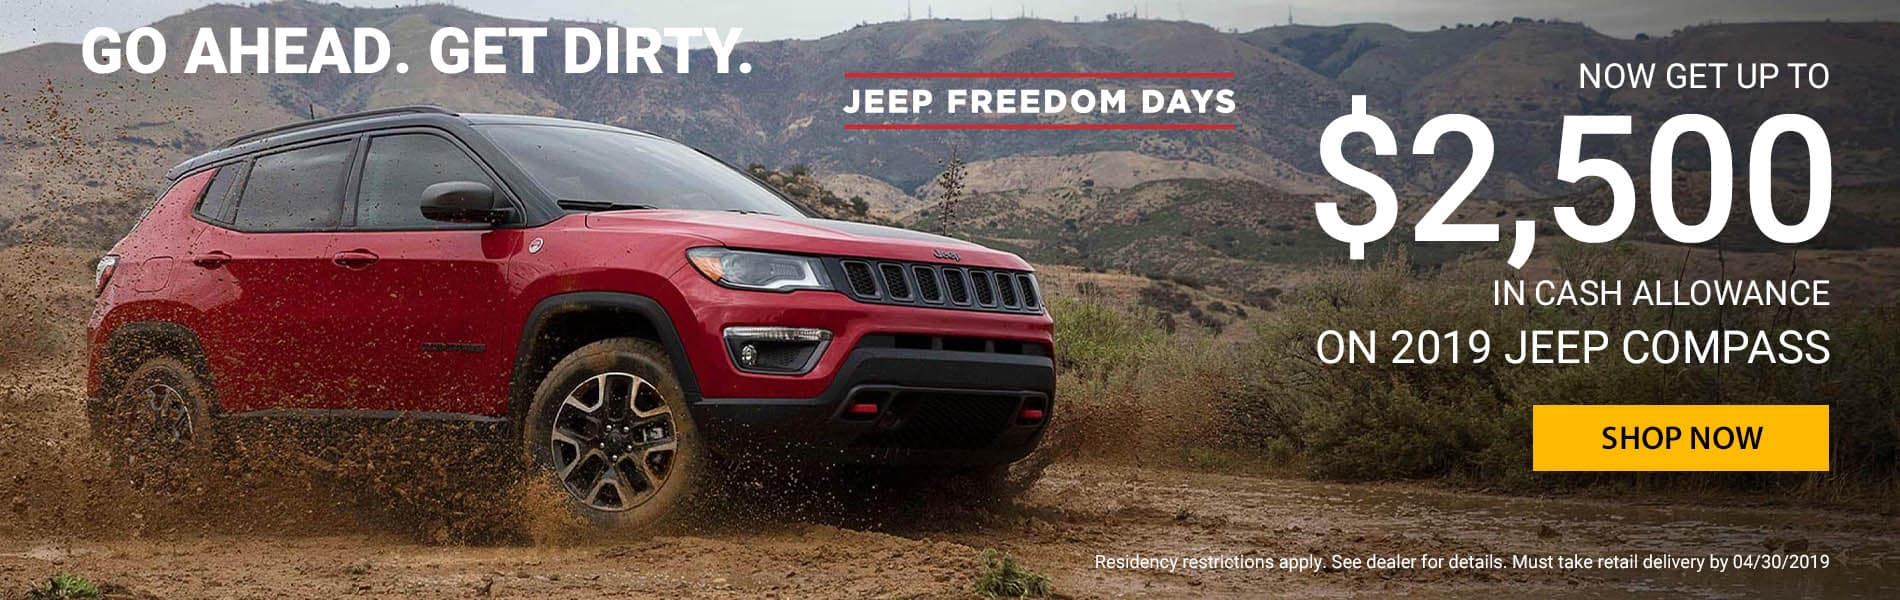 Now get $2500 in cash allowance on the 2019 Jeep Compass